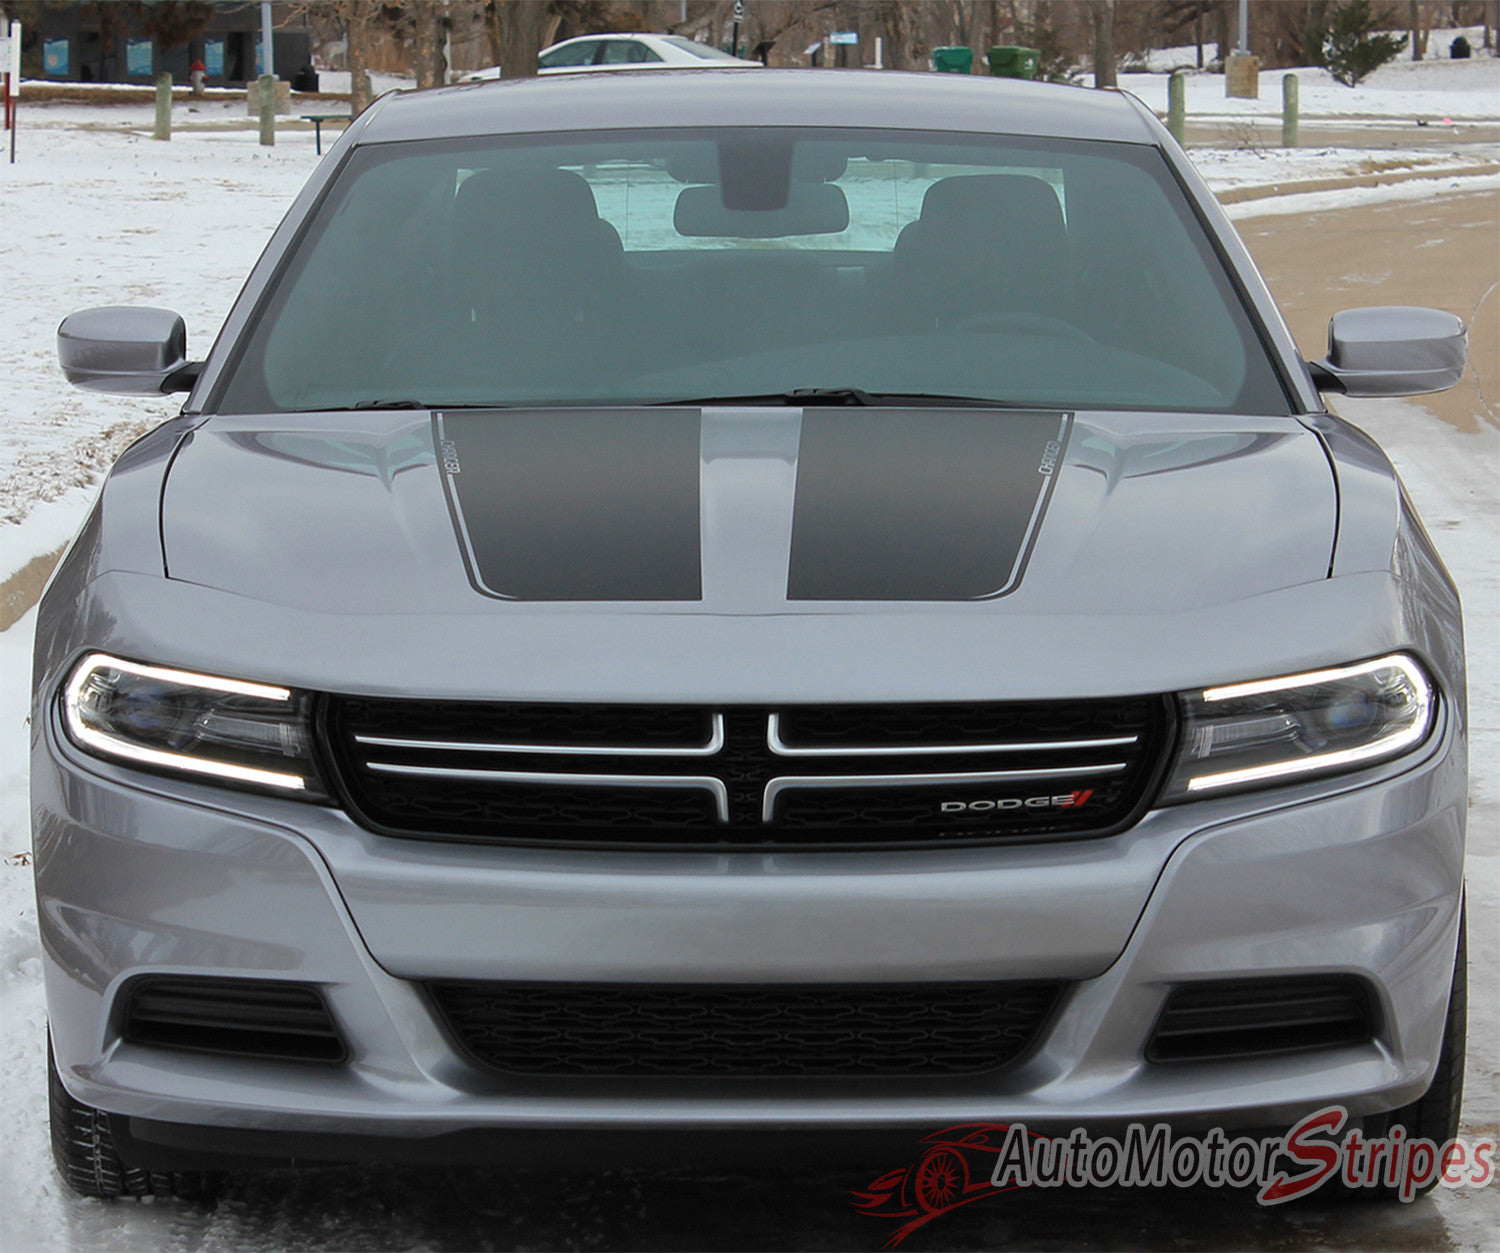 2015 2021 Dodge Charger Split Hood Stripes Vinyl Graphic Decals 3m Auto Motor Stripes Decals Vinyl Graphics And 3m Striping Kits